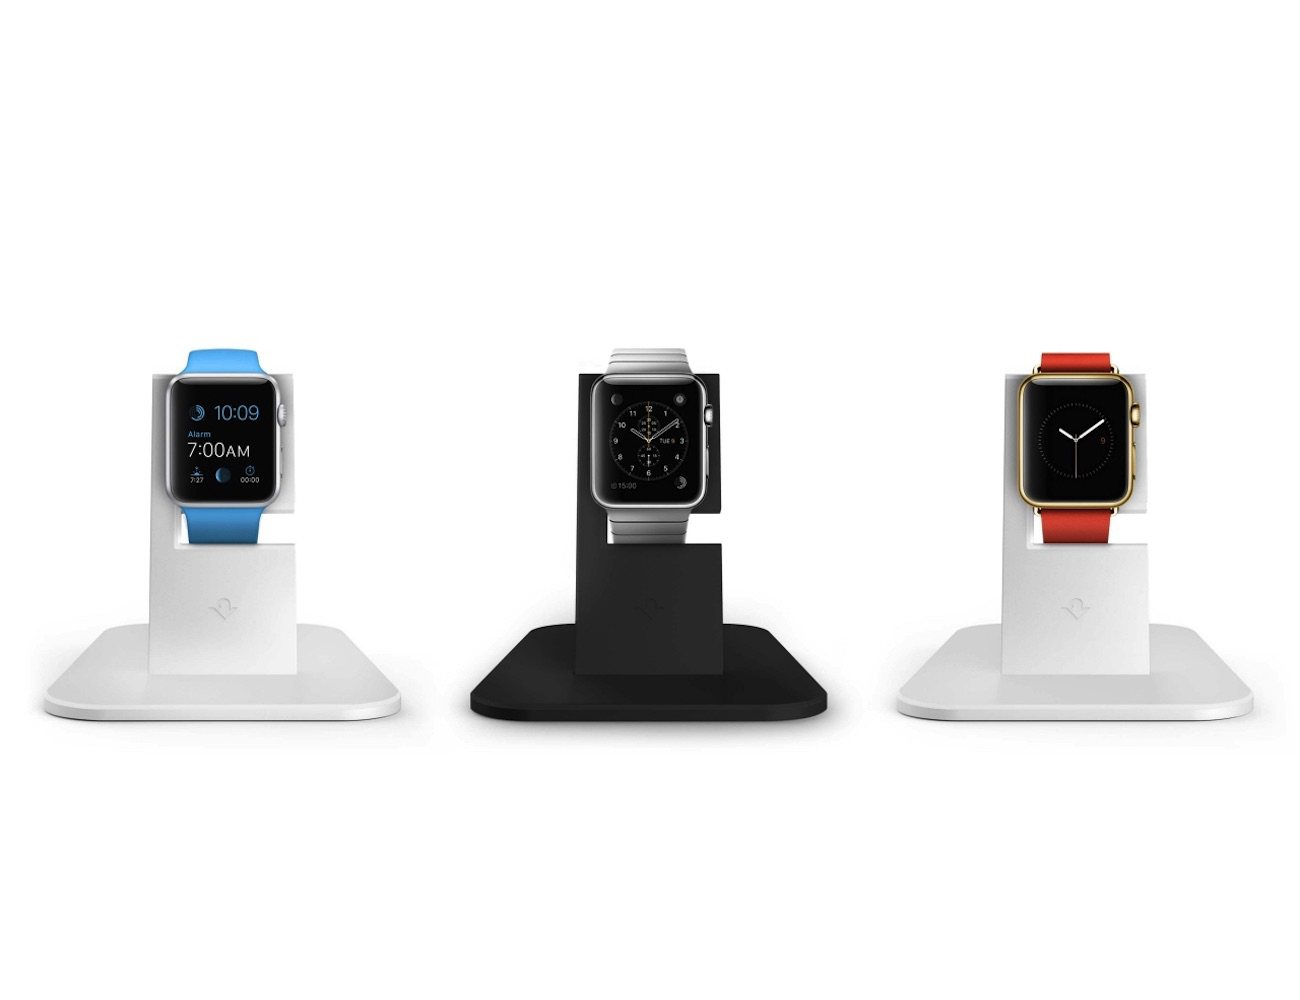 HiRise For Apple Watch By Twelve South